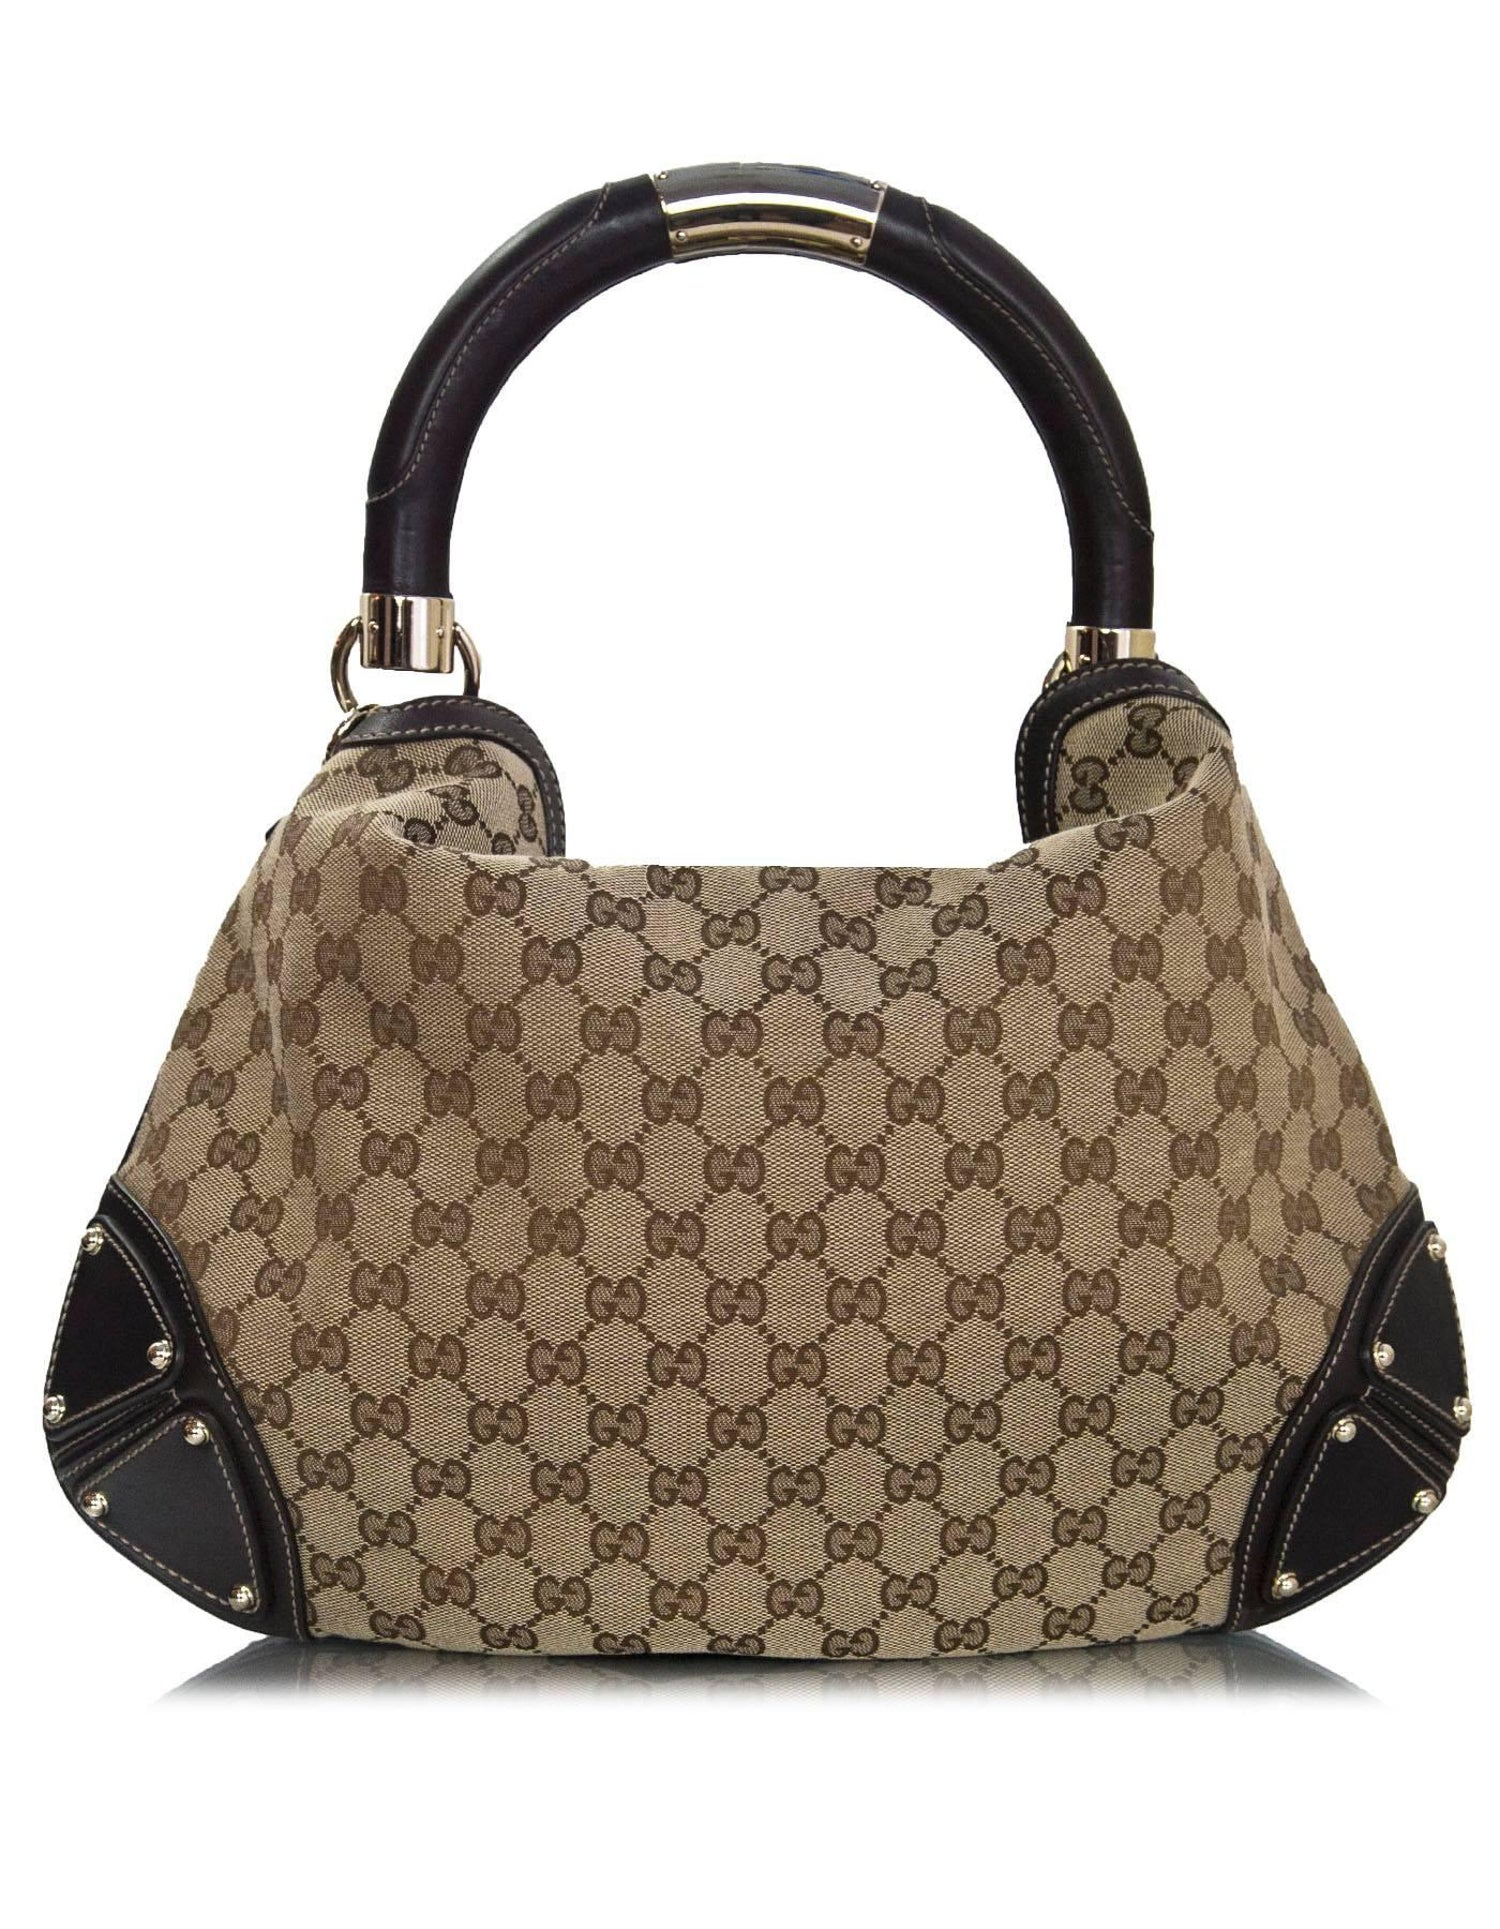 cc1e7a42733 Gucci Brown Monogram Canvas Medium Indy Tassel Bag with Strap For Sale at  1stdibs